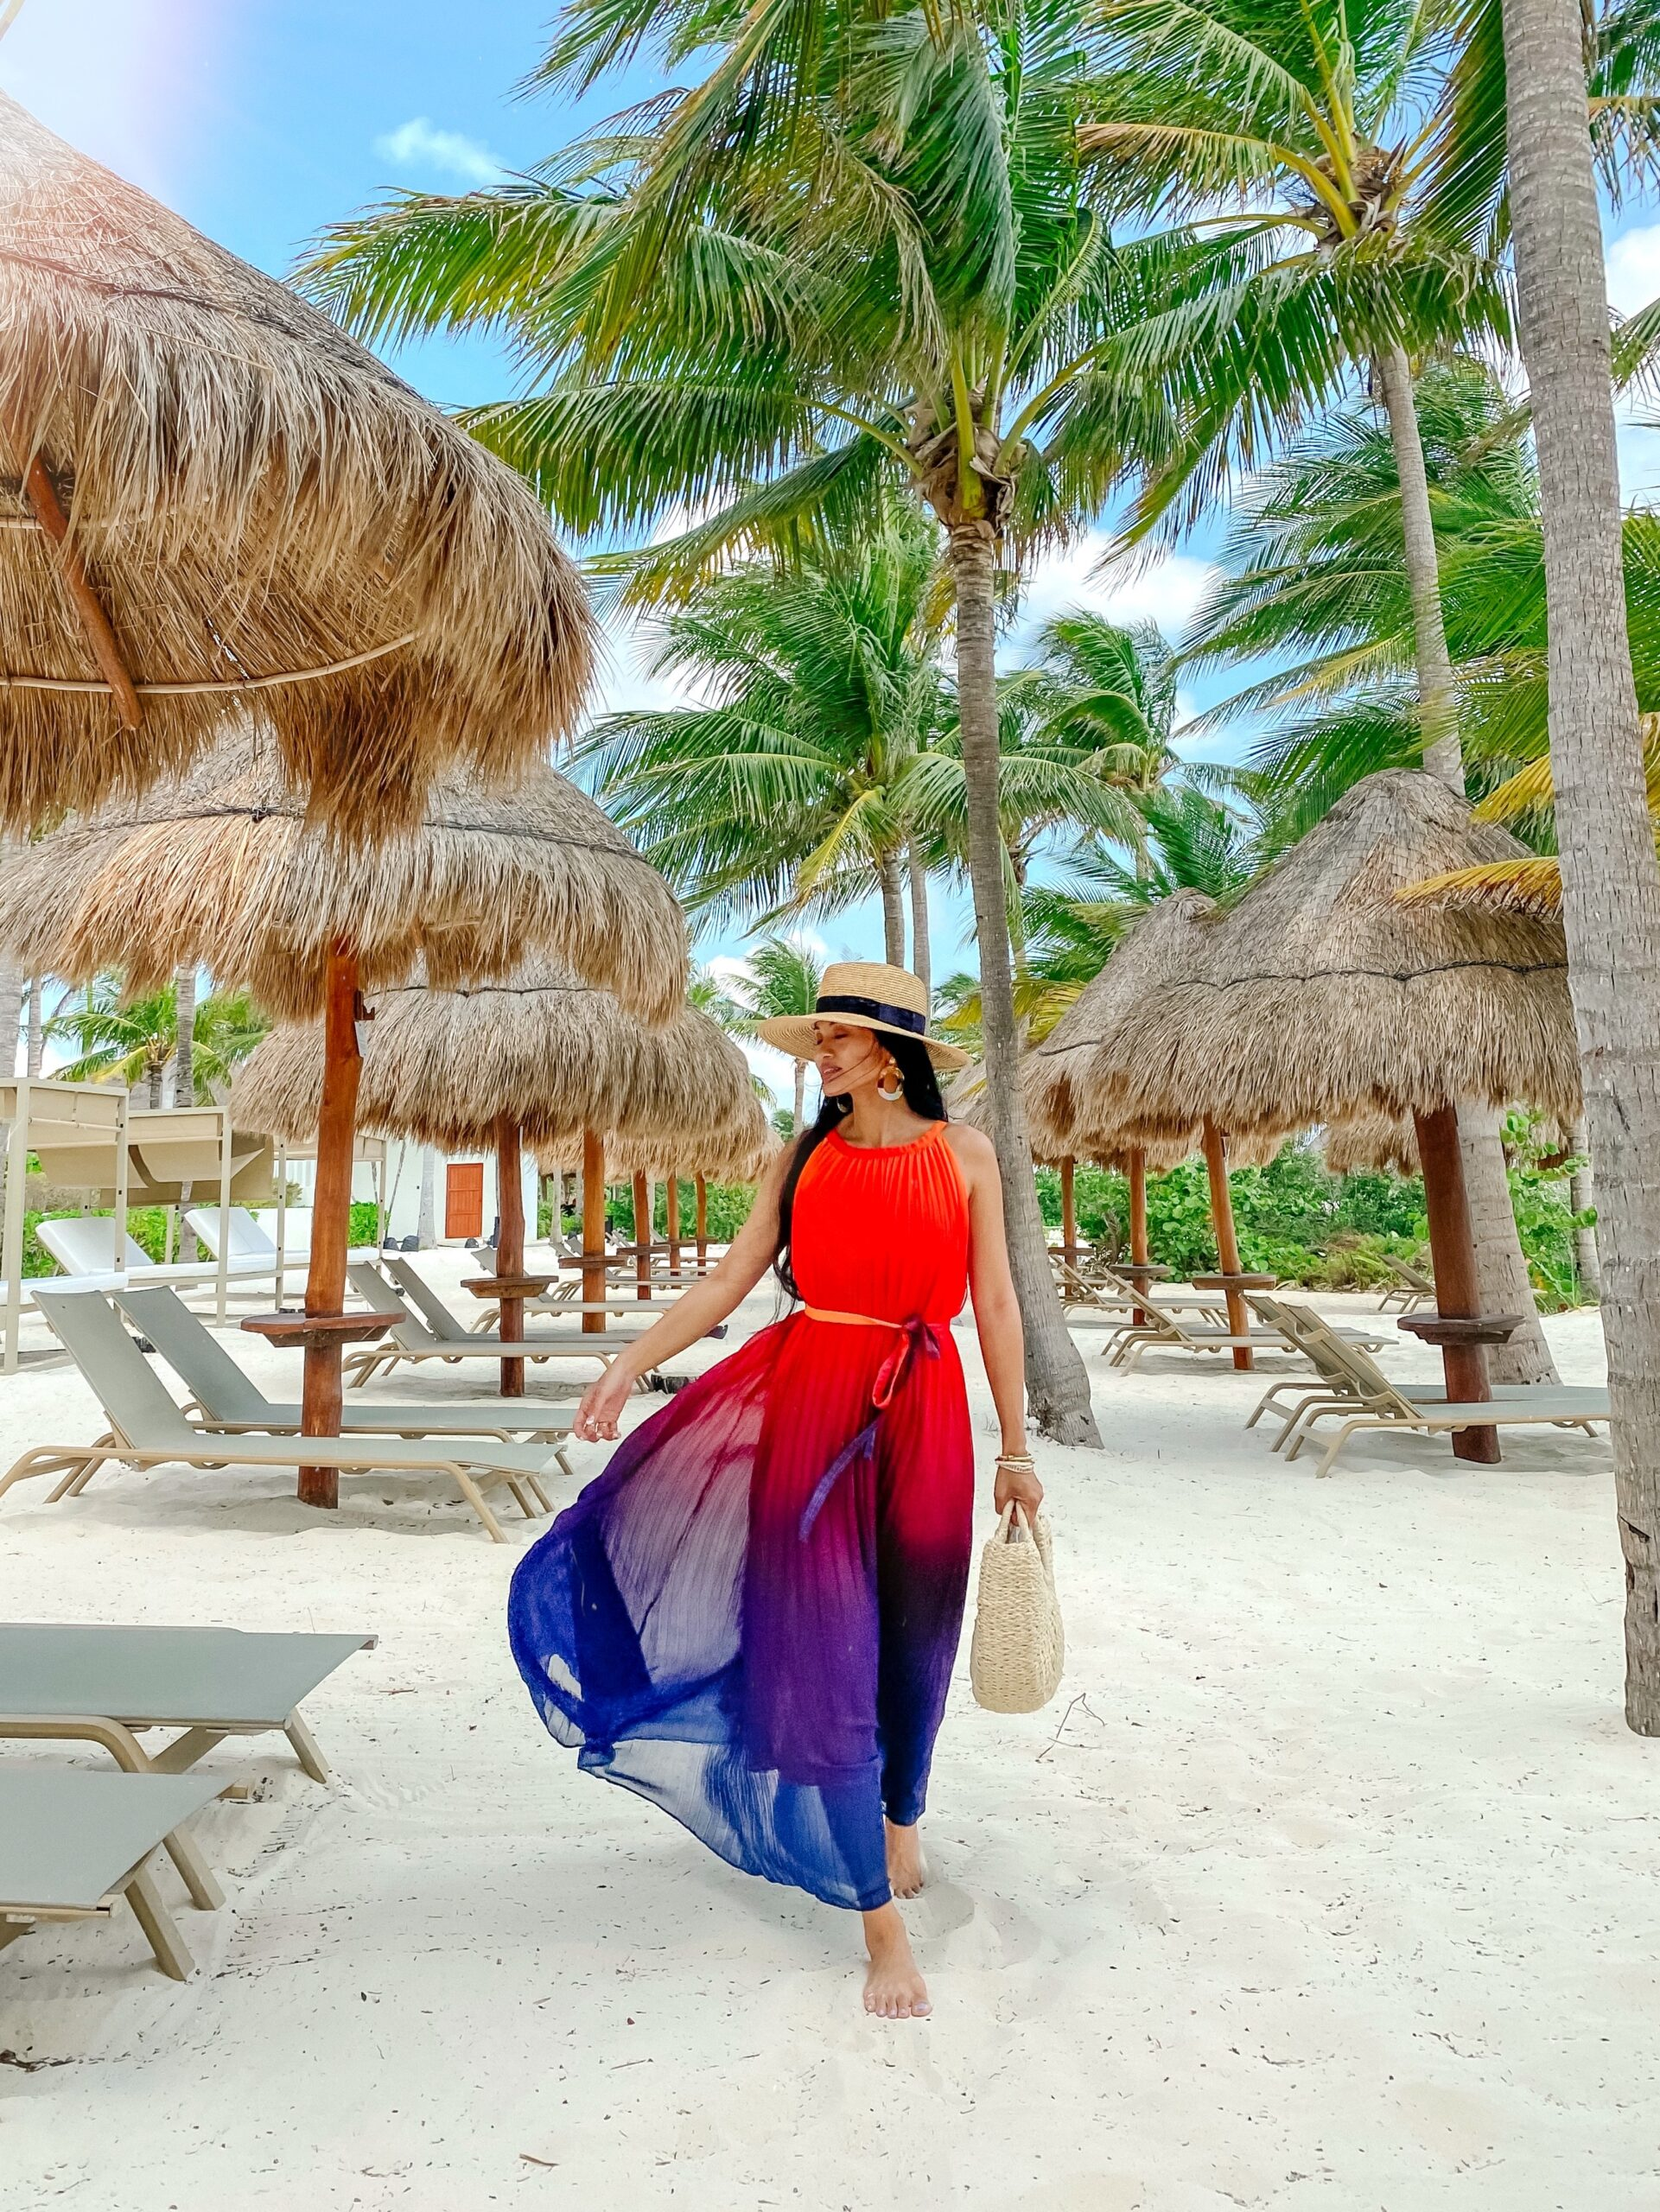 TRAVEL AFTER COVID, MEXICO, COVID RESTRICTIONS, OMBRE MAXI DRESS, VACATION STYLE